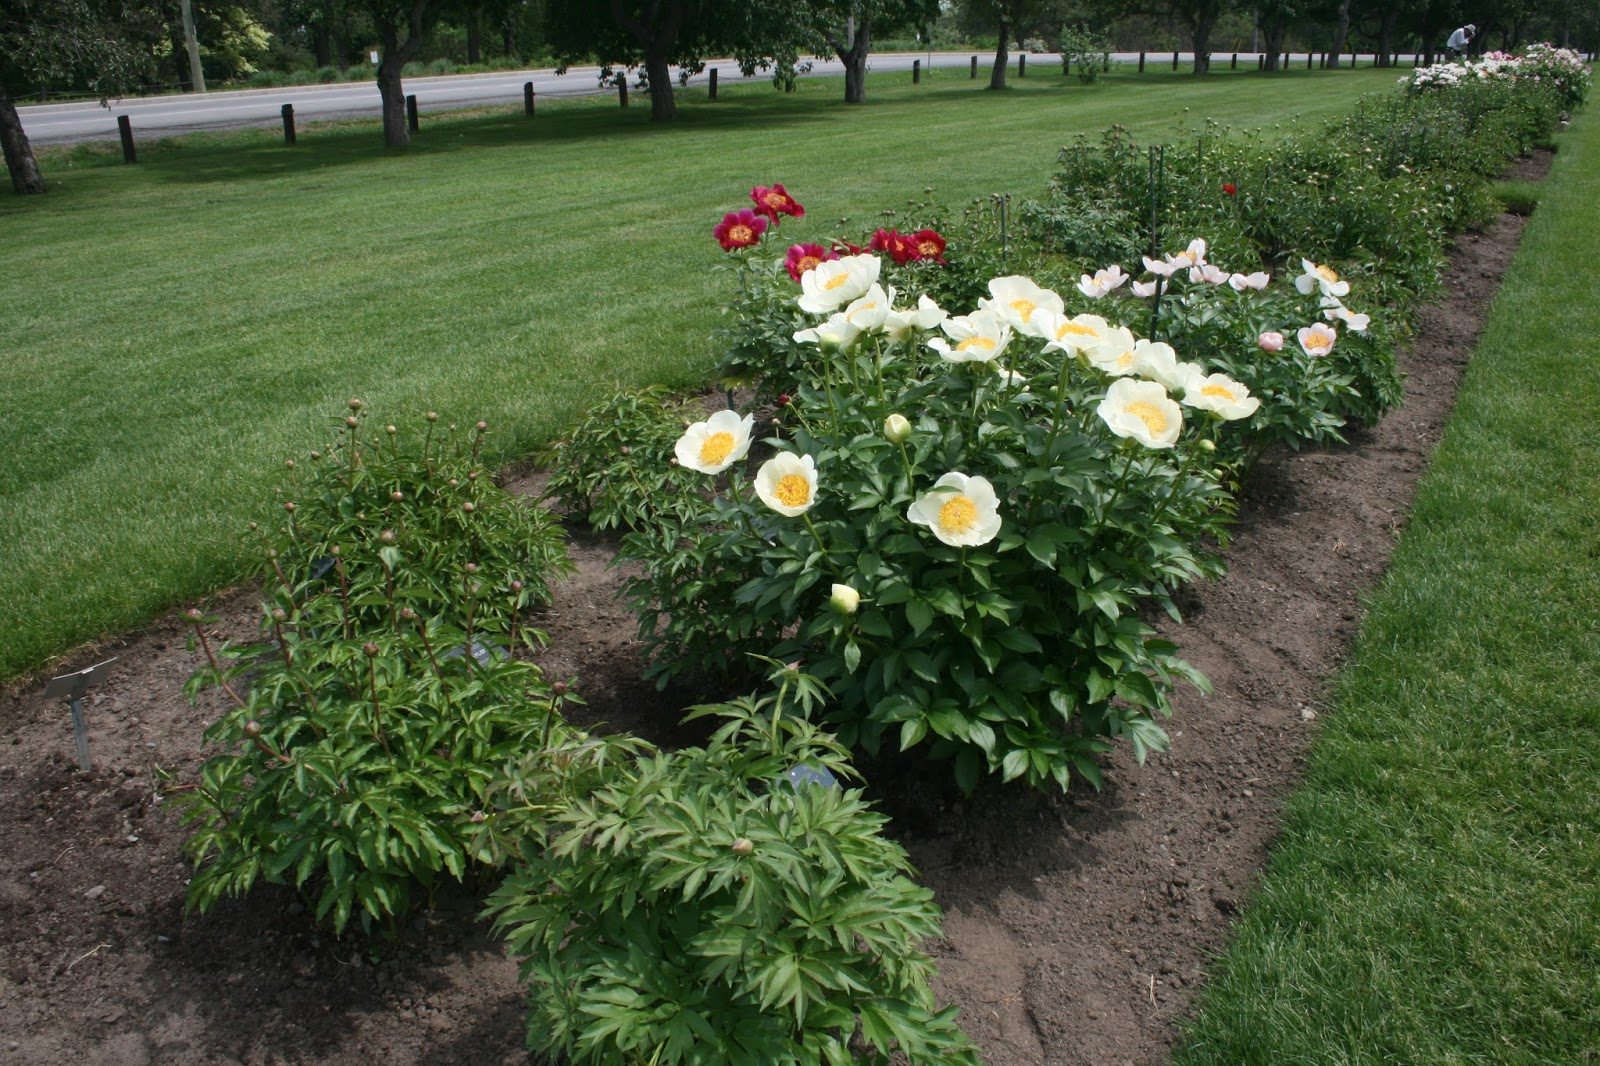 Menards Landscaping Bushes : Peony society a tour of the central experimental garden in ottawa